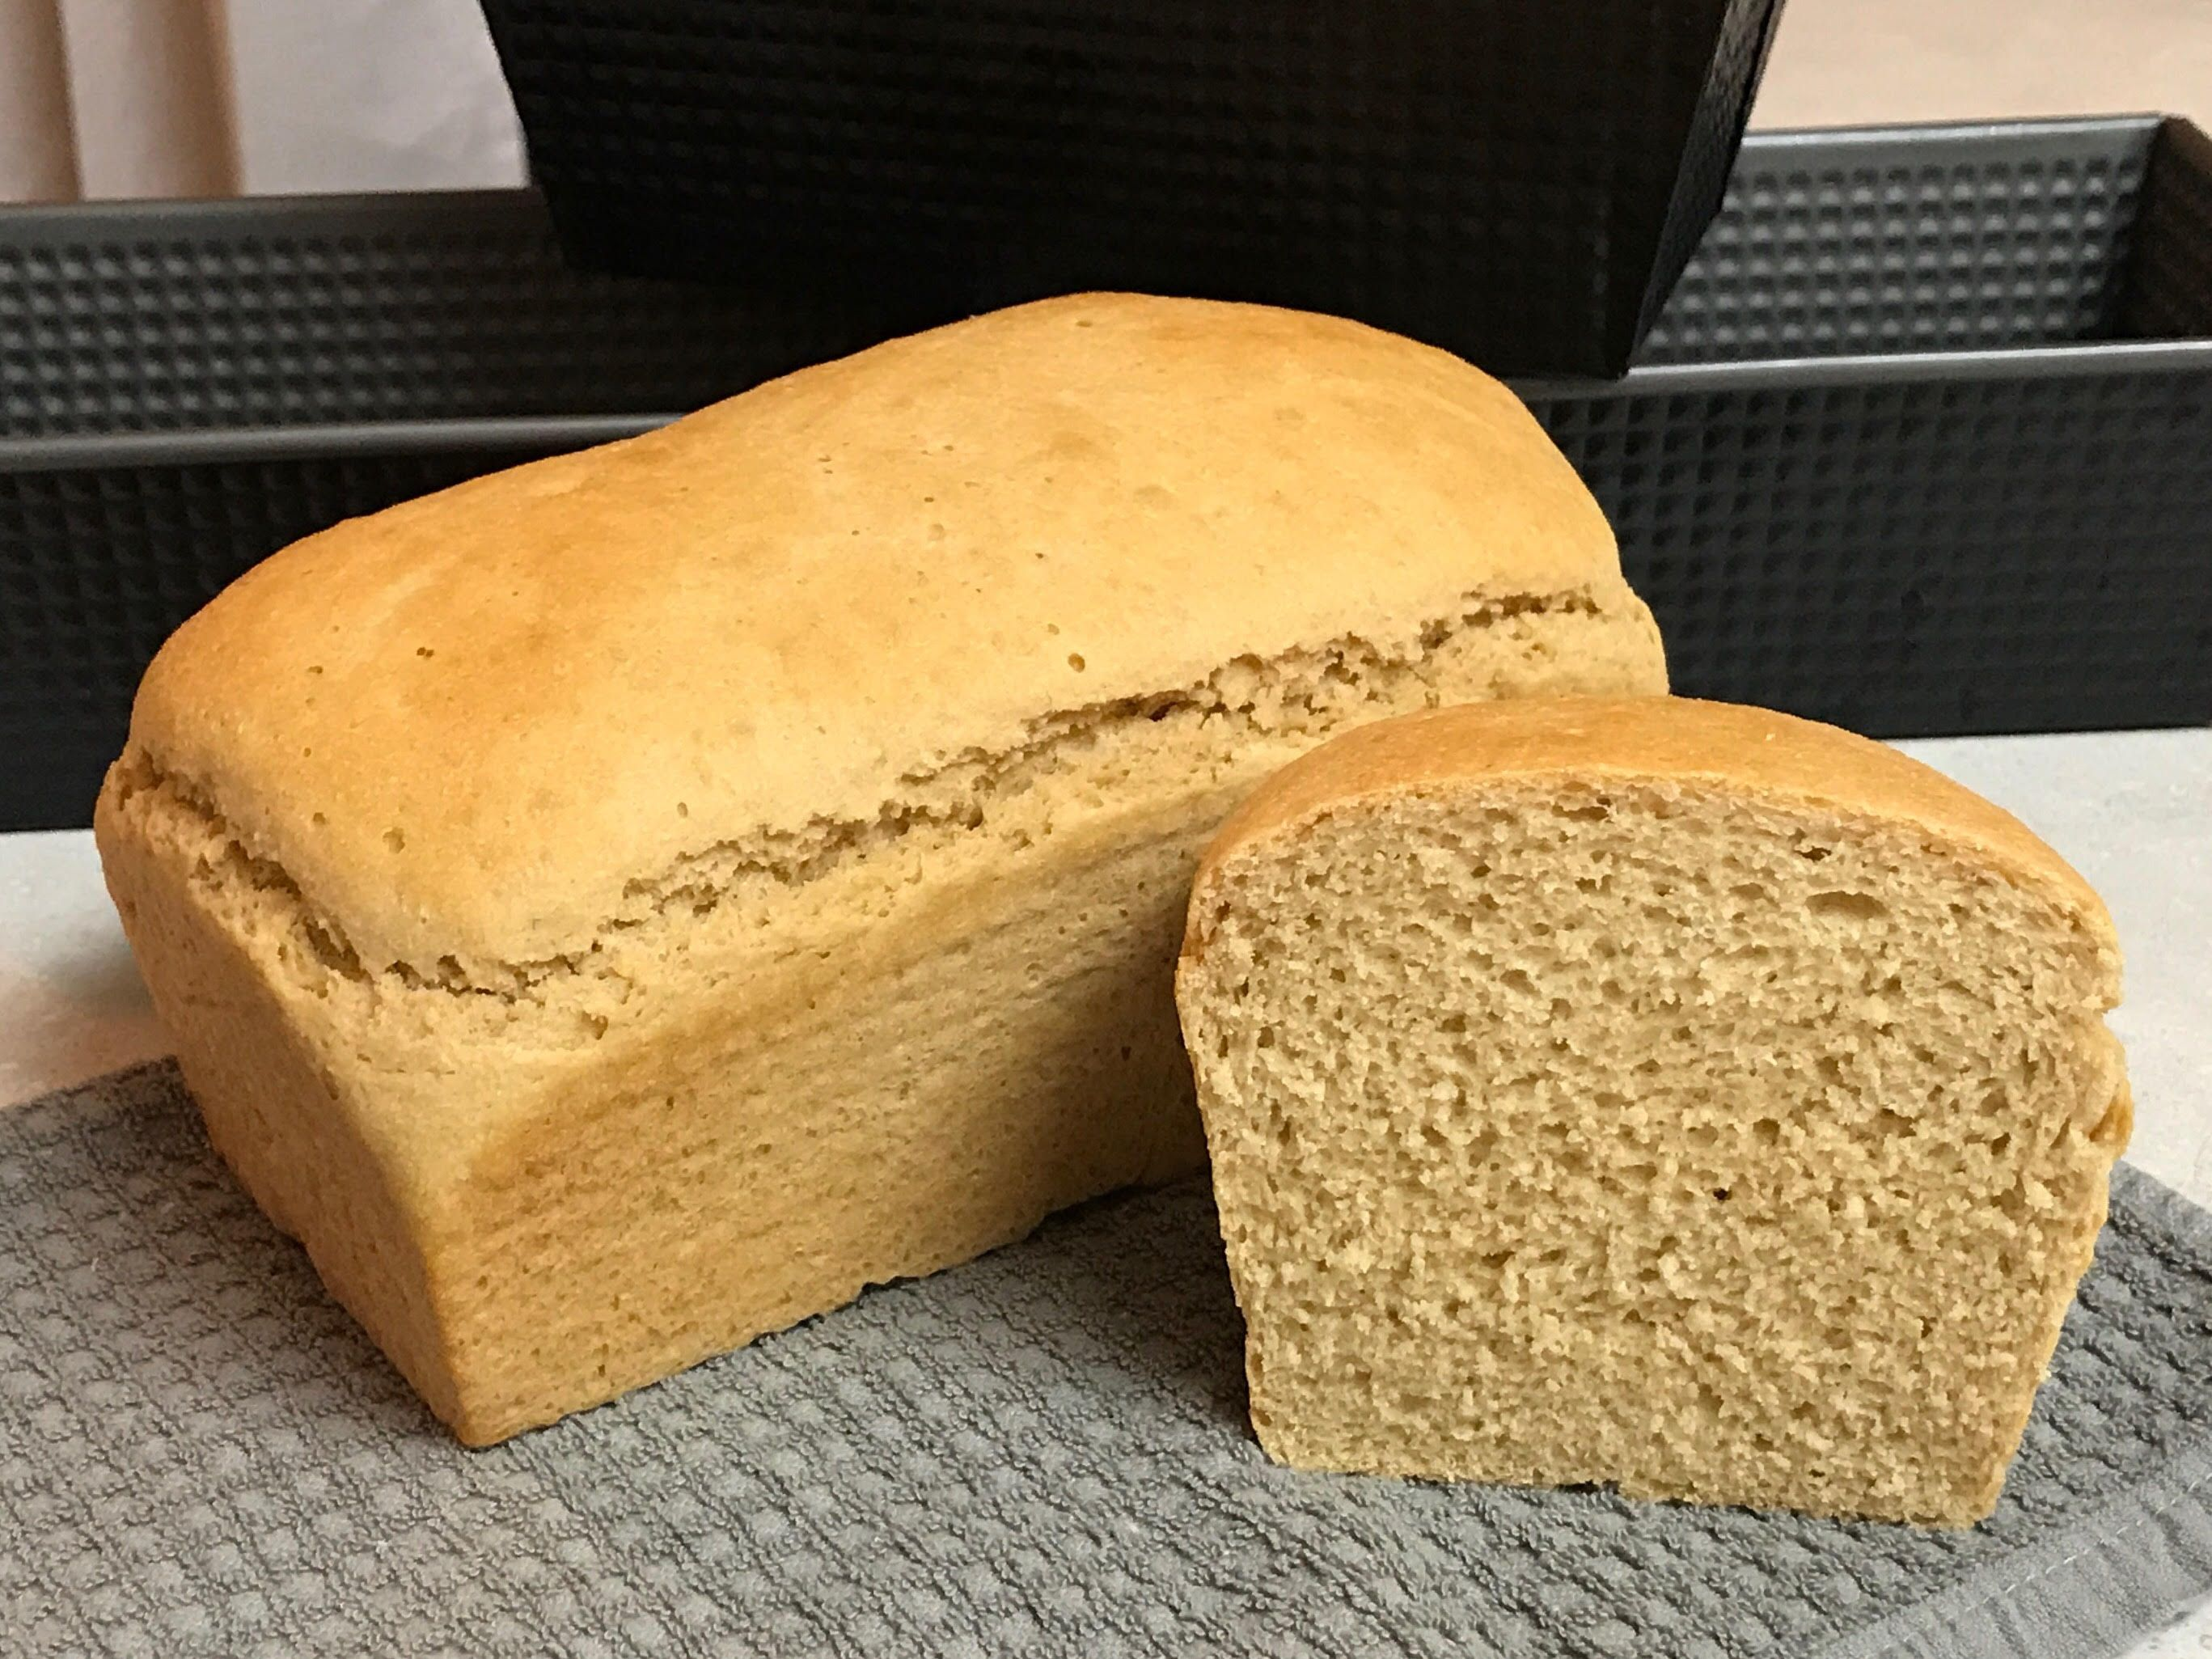 Awesome recipe for kamut bread with some great tips for